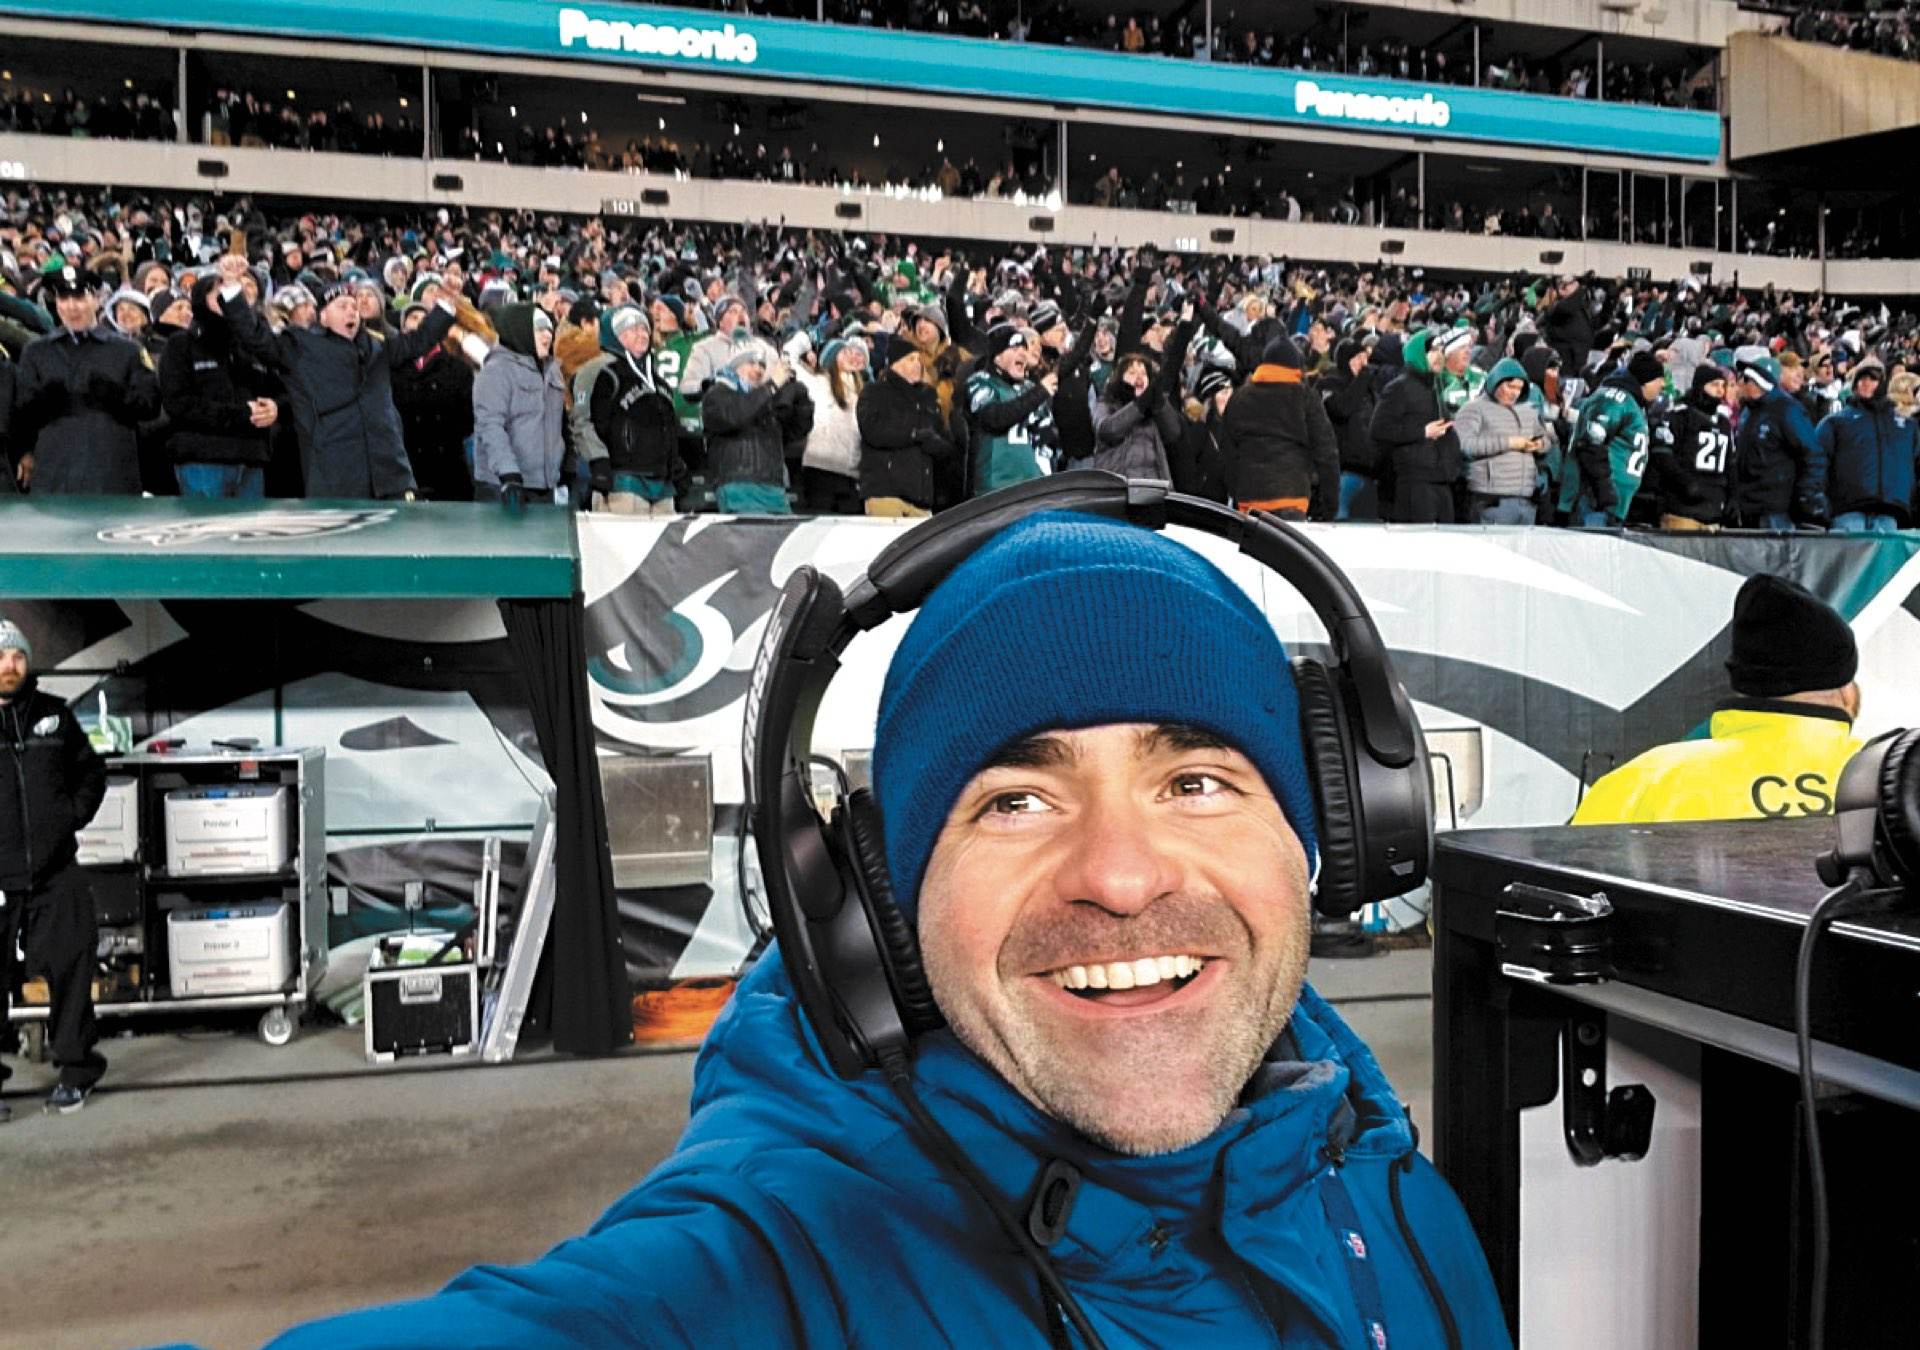 A selfie of CPS alumnus Ron Tedesco smiling in headphones on the sidelines with packed stands of Eagles fans behind him